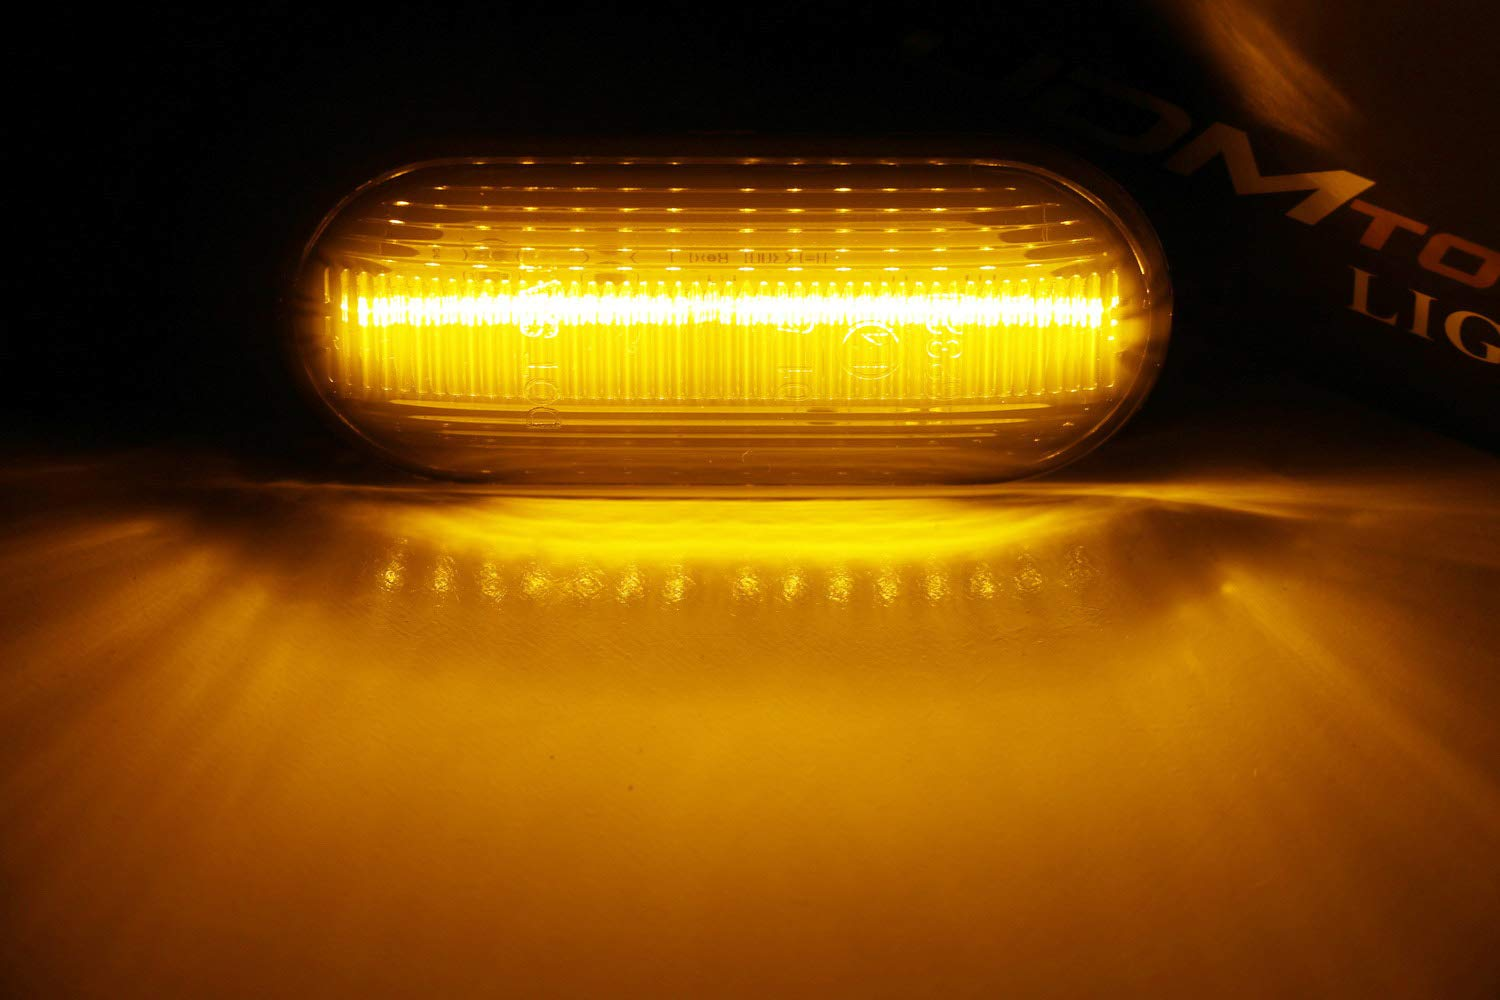 Powered by 15-SMD LED Replace OEM Sidemarker Lamps iJDMTOY Clear Lens Amber Full LED Front Side Marker Light Kit For Volkswagen MK4 Jetta GTI R32 Beetle etc